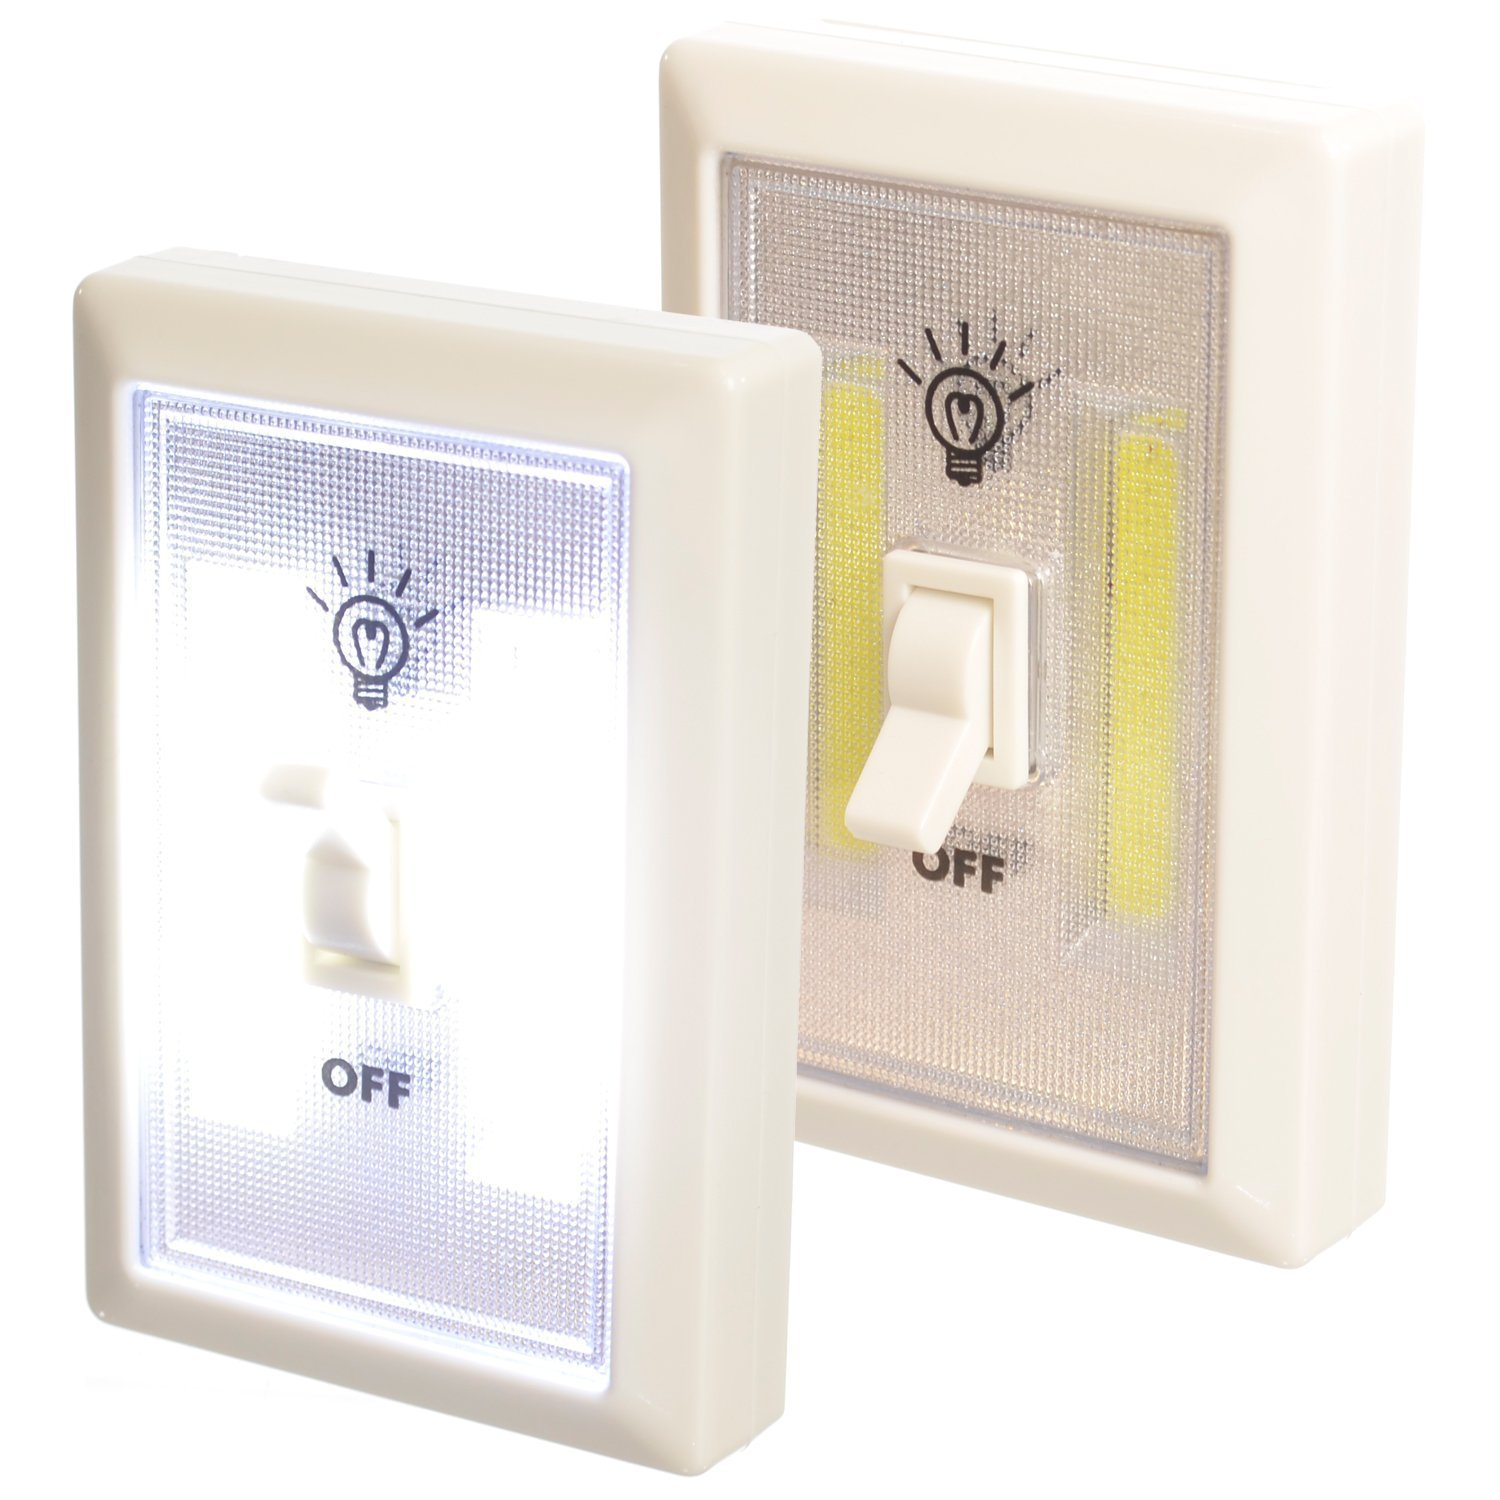 Promier LIGHT SWITCH Battery Operated Cordless Light Using Super Bright COB  LED Technology For Baby